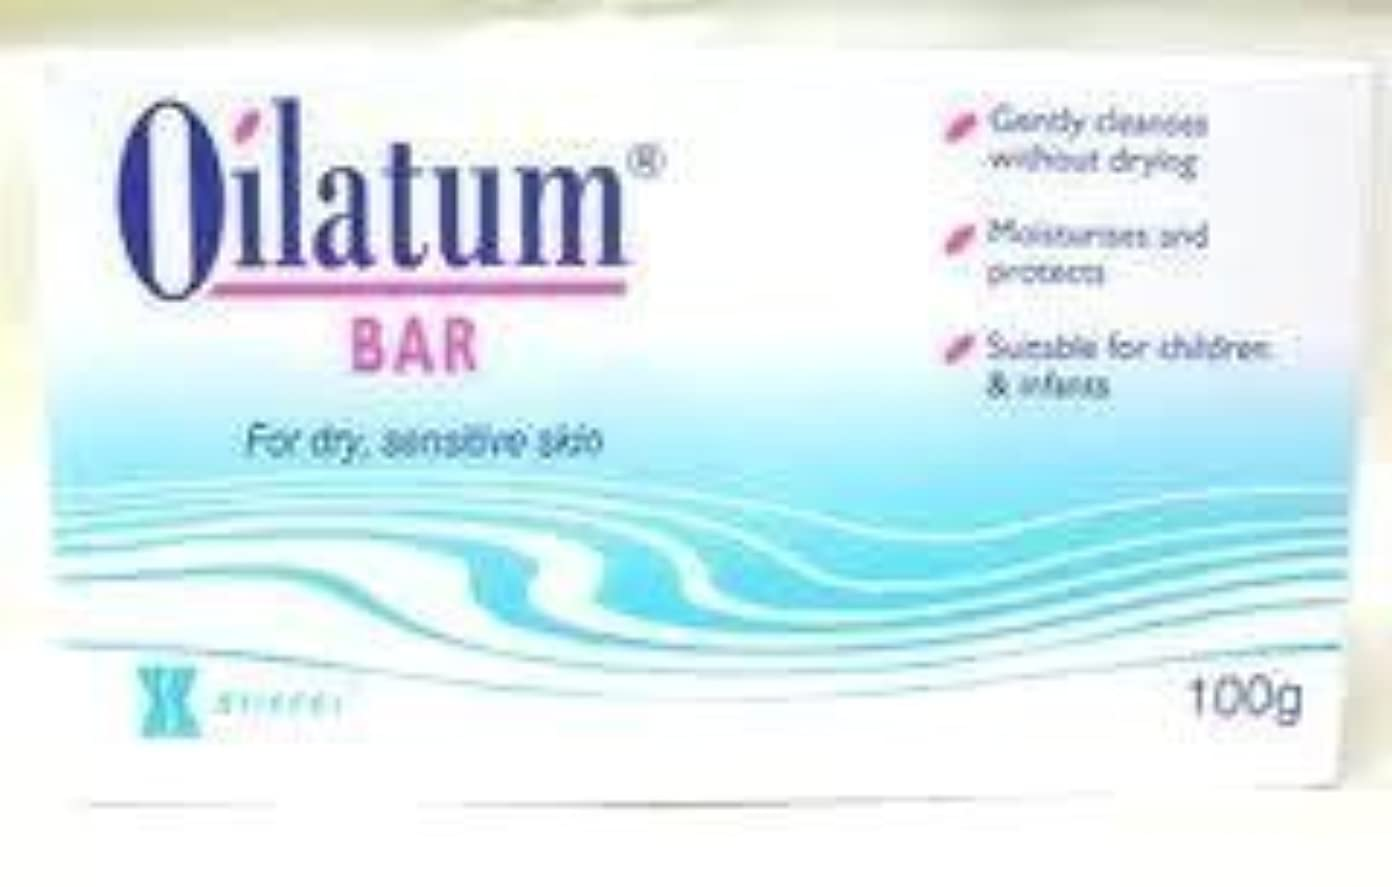 想定請求書シェルター2 Packs Oilatum Bar Soap for Sensitive Soap Skin Free Shipping 100g. by Oilatum